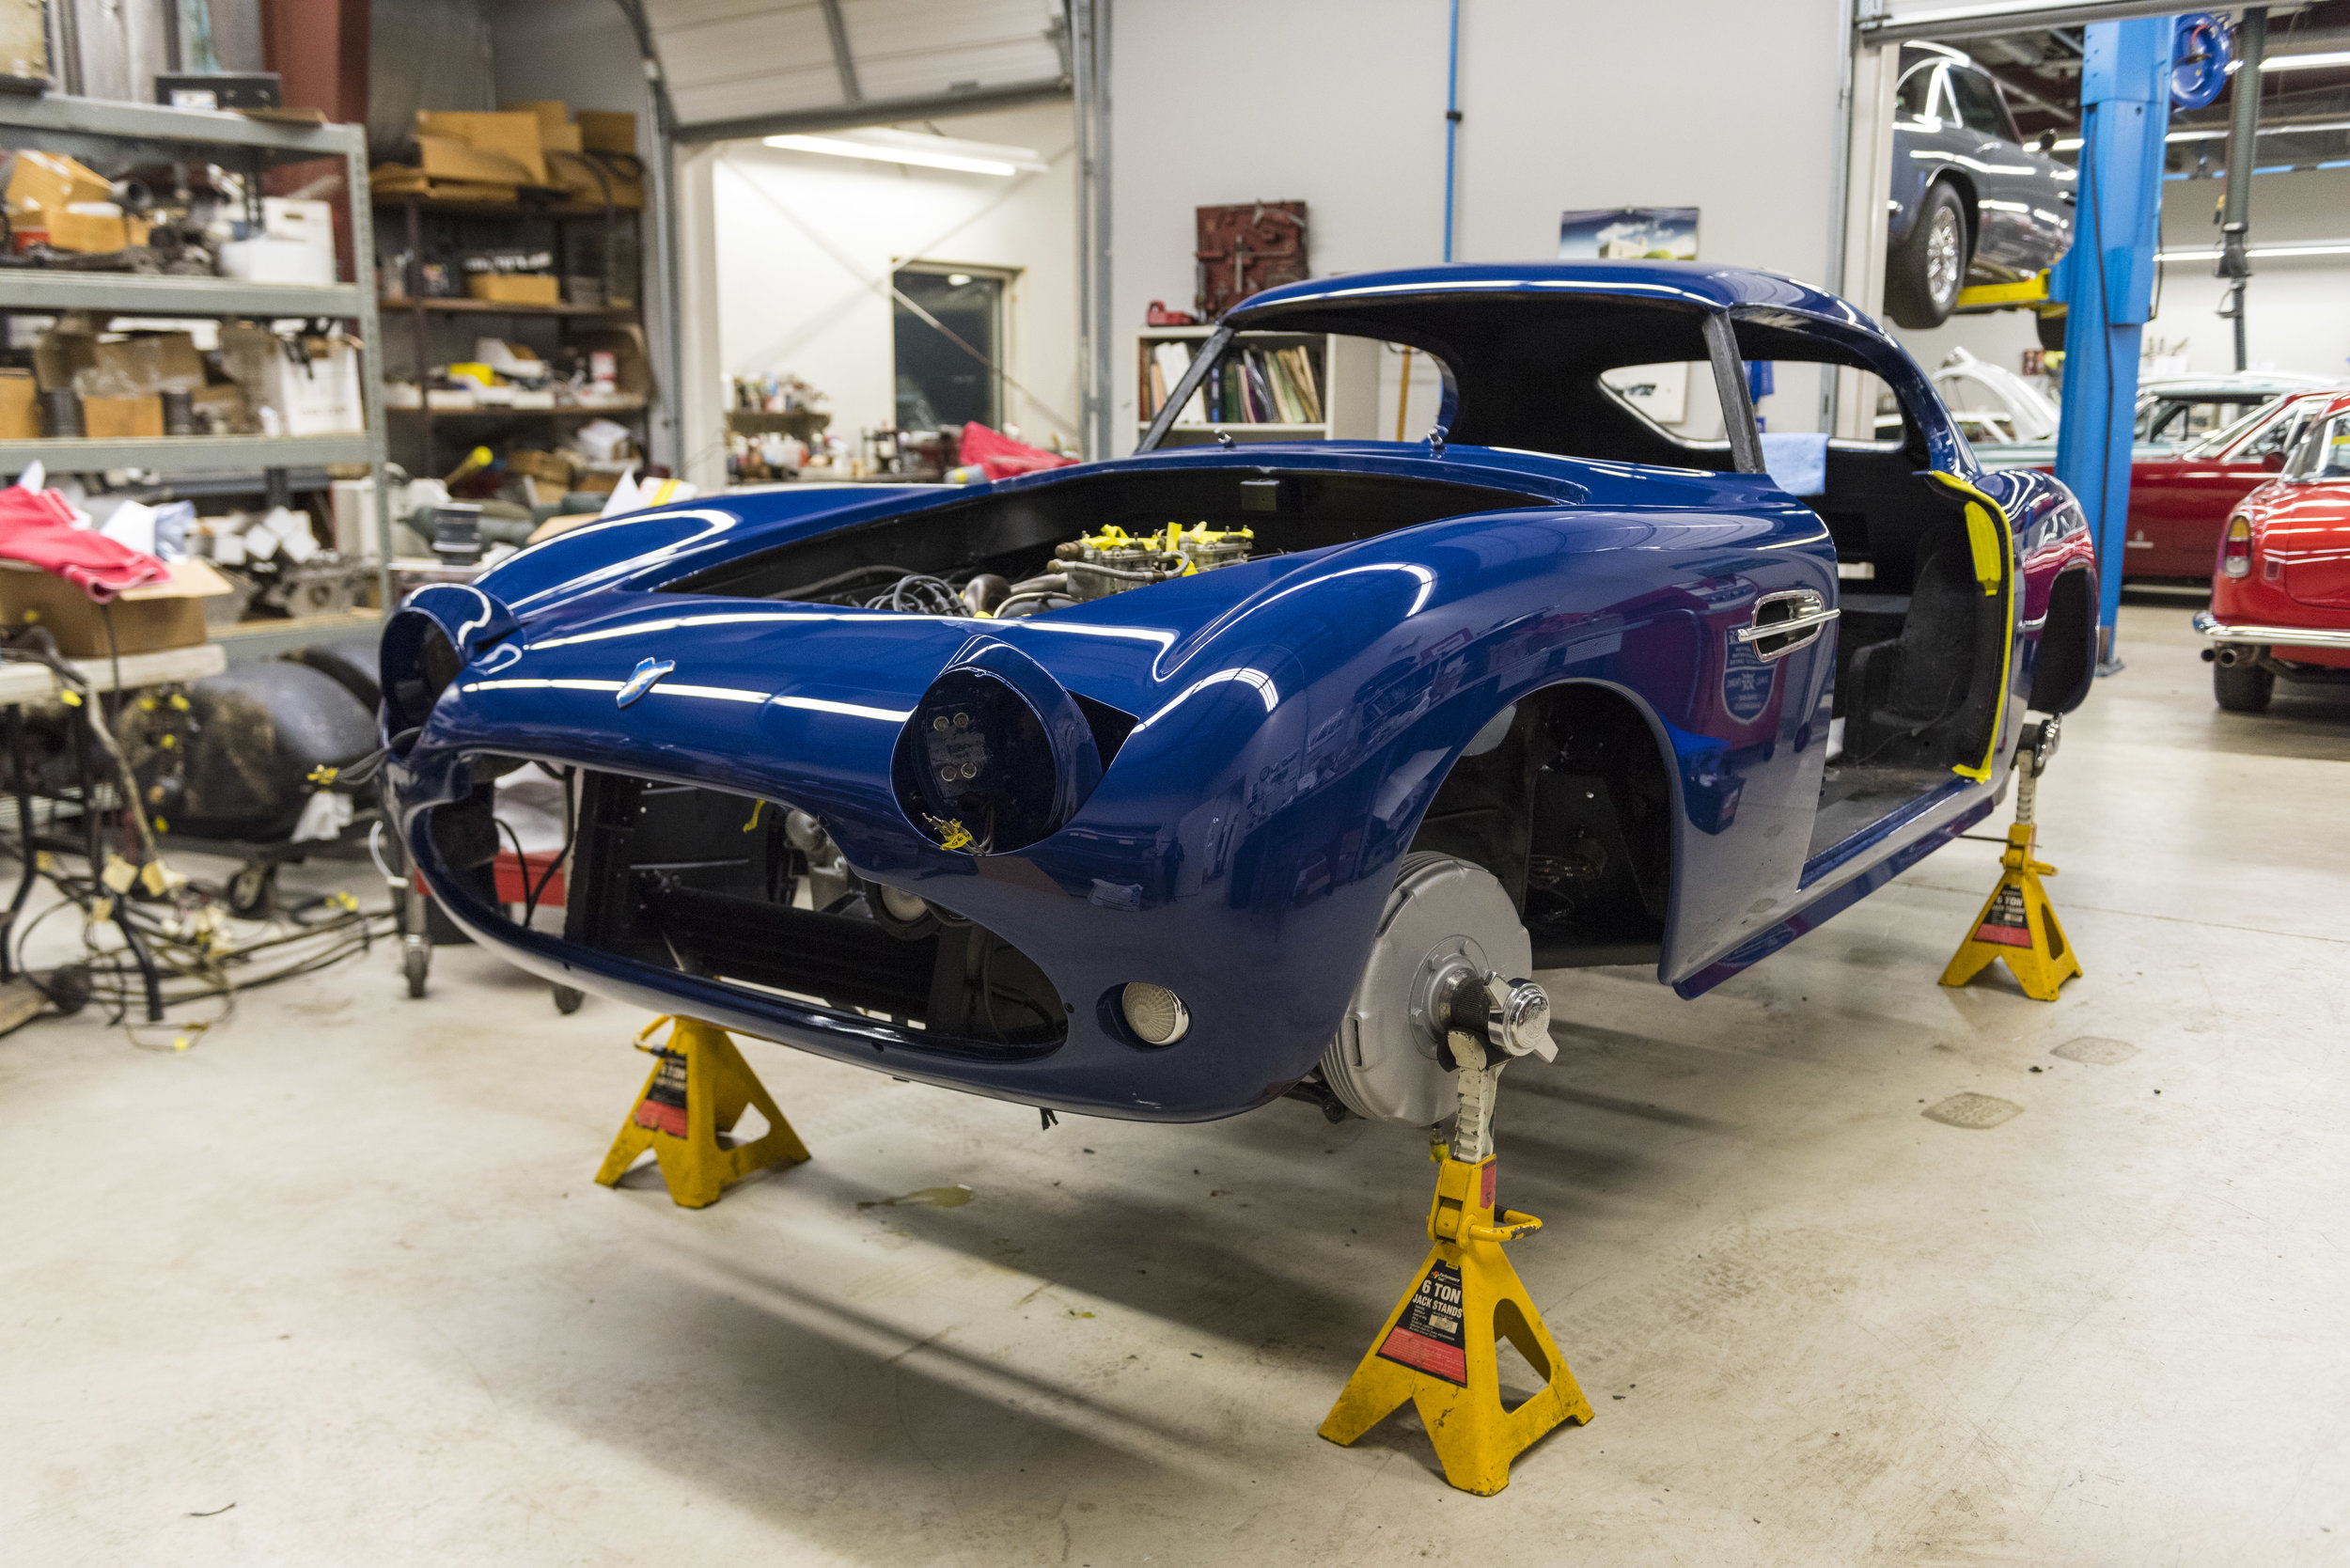 Restorations - We have built our reputation by providing our clients with the highest quality in classic vehicle restorations tailored to your specific needs.